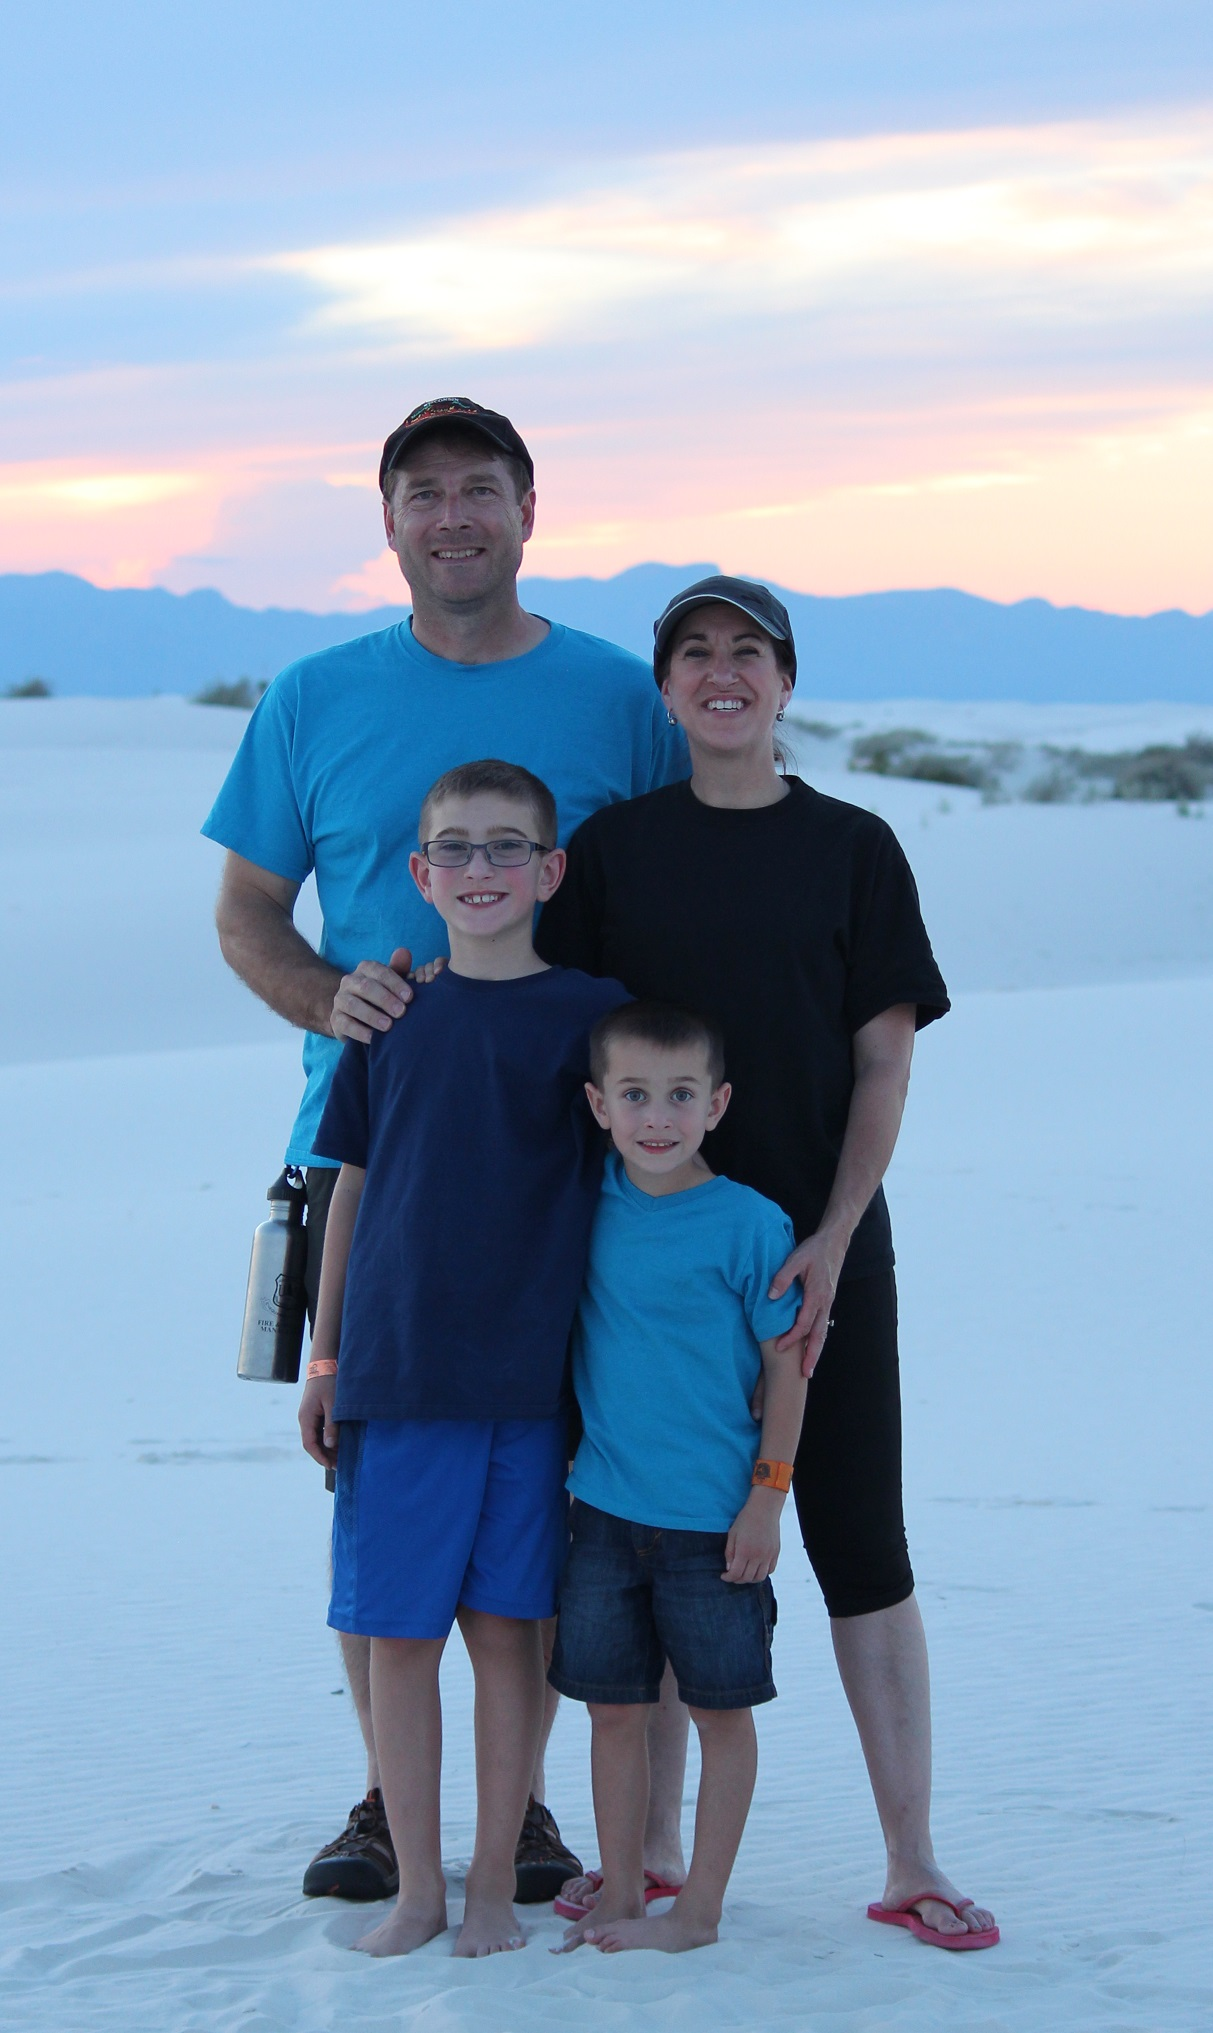 John with his wife, Caroline, and their children at White Sands, New Mexico